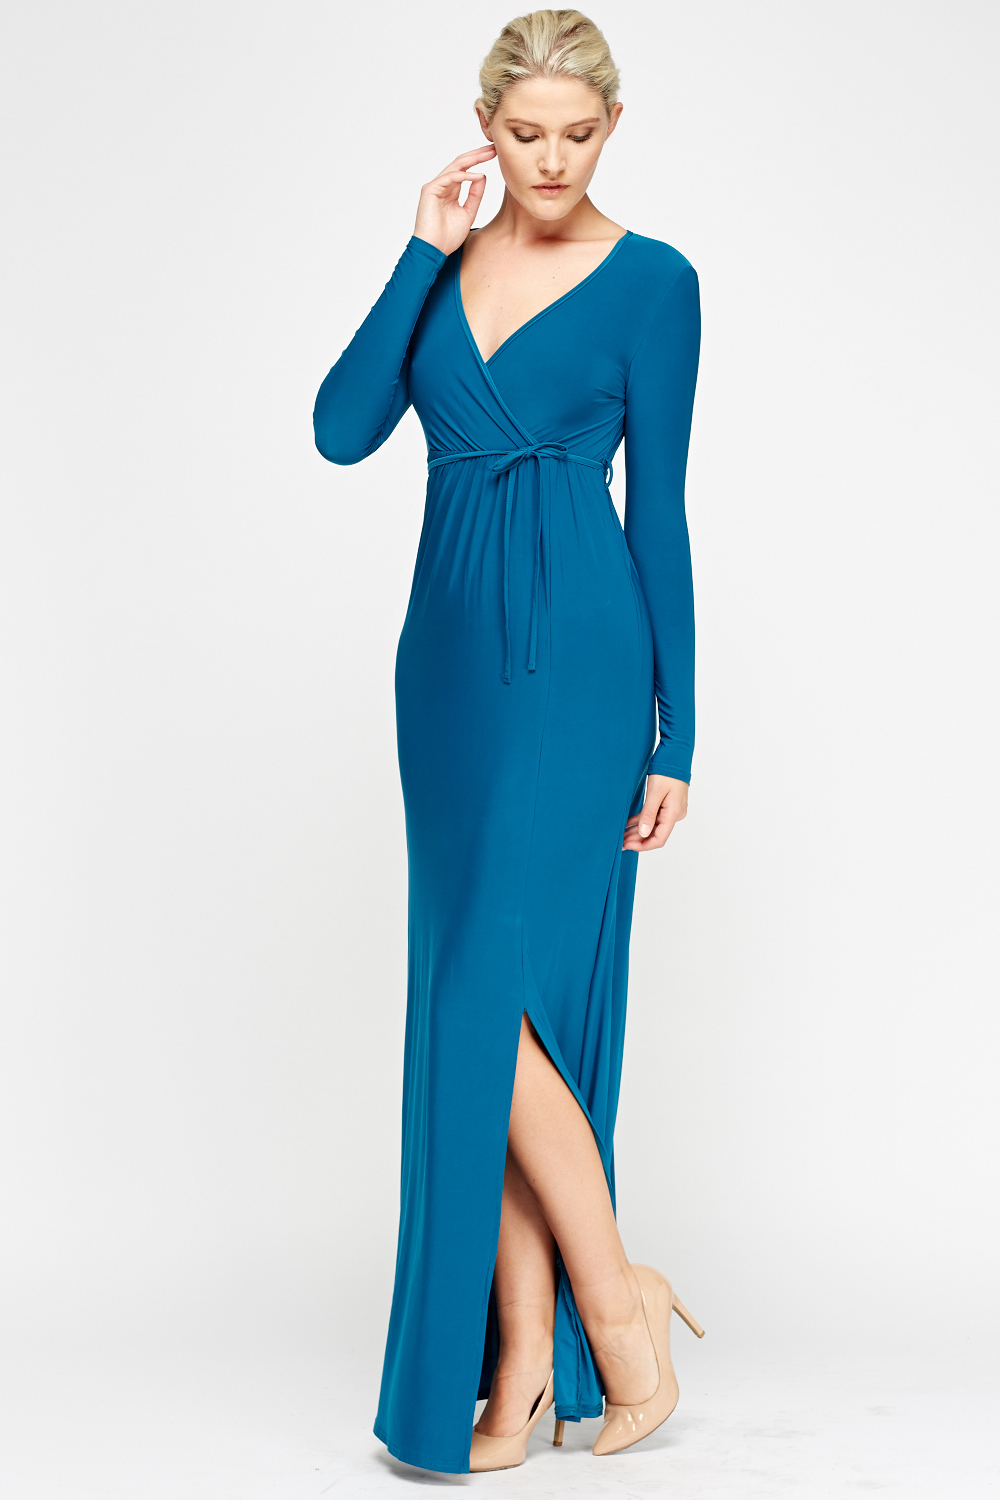 Wrapped Teal Maxi Dress - Just £5